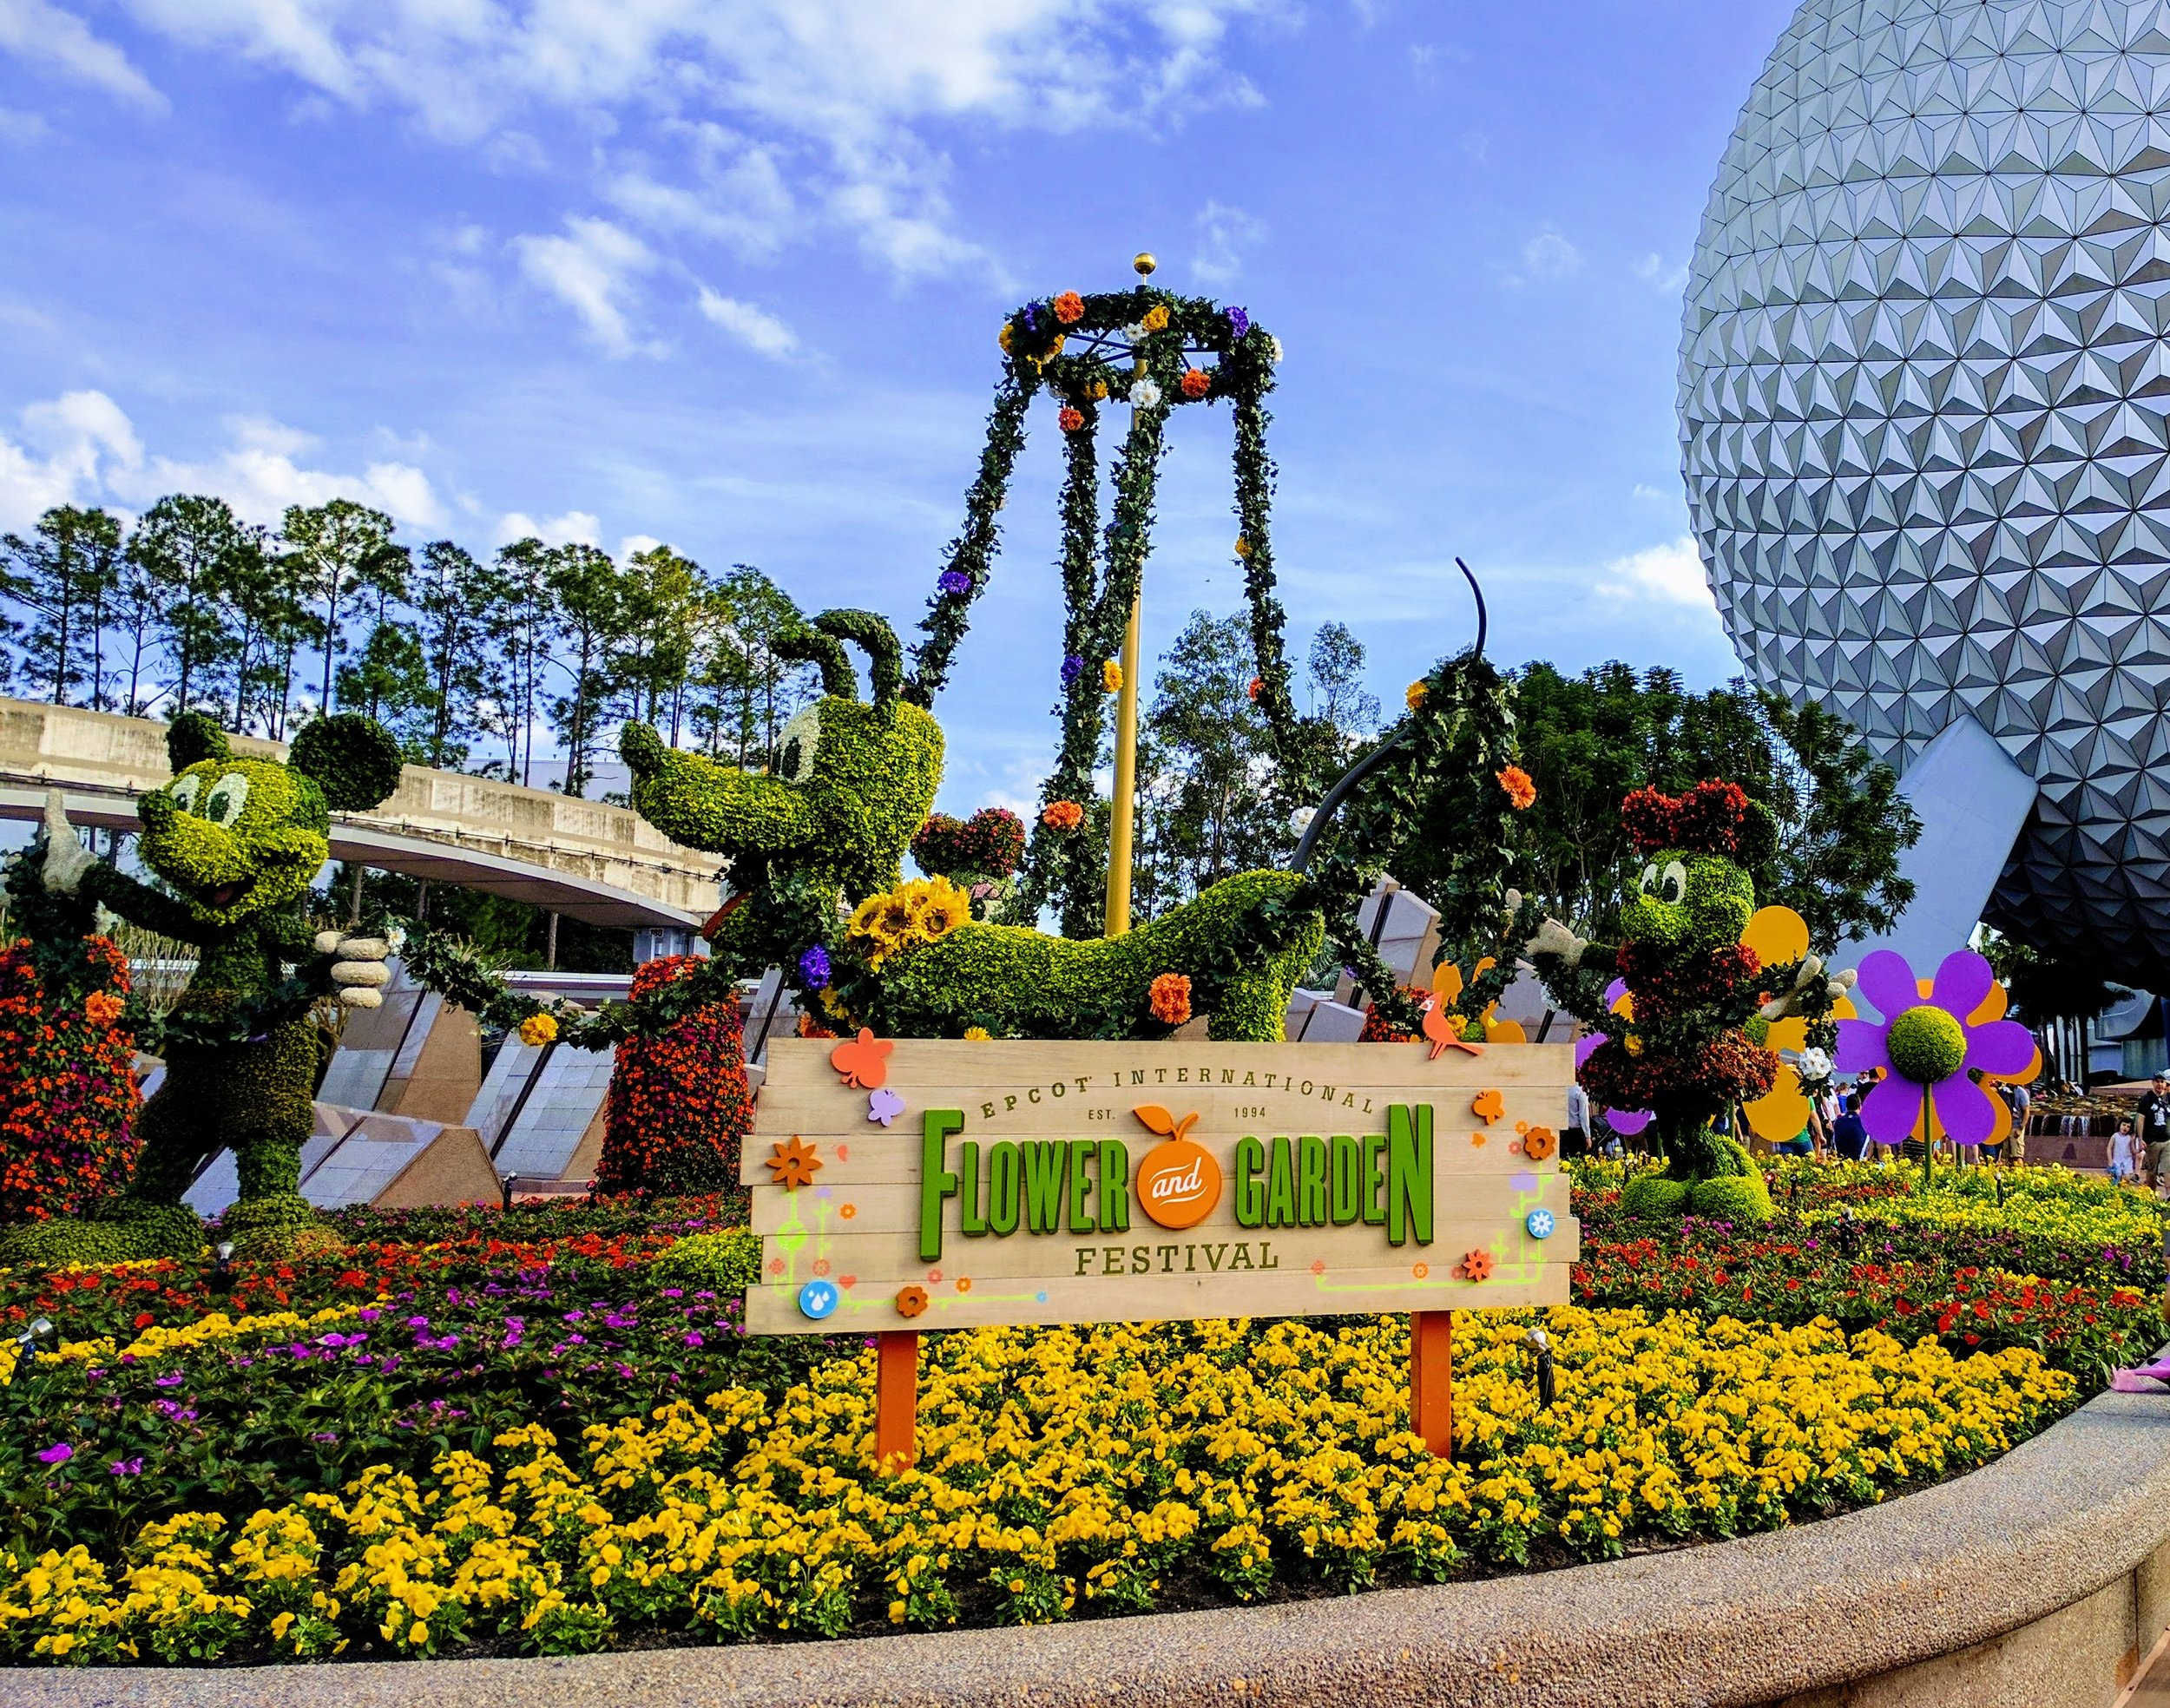 Epcot International Flower and Garden Festival runs from March 1st - May 29th